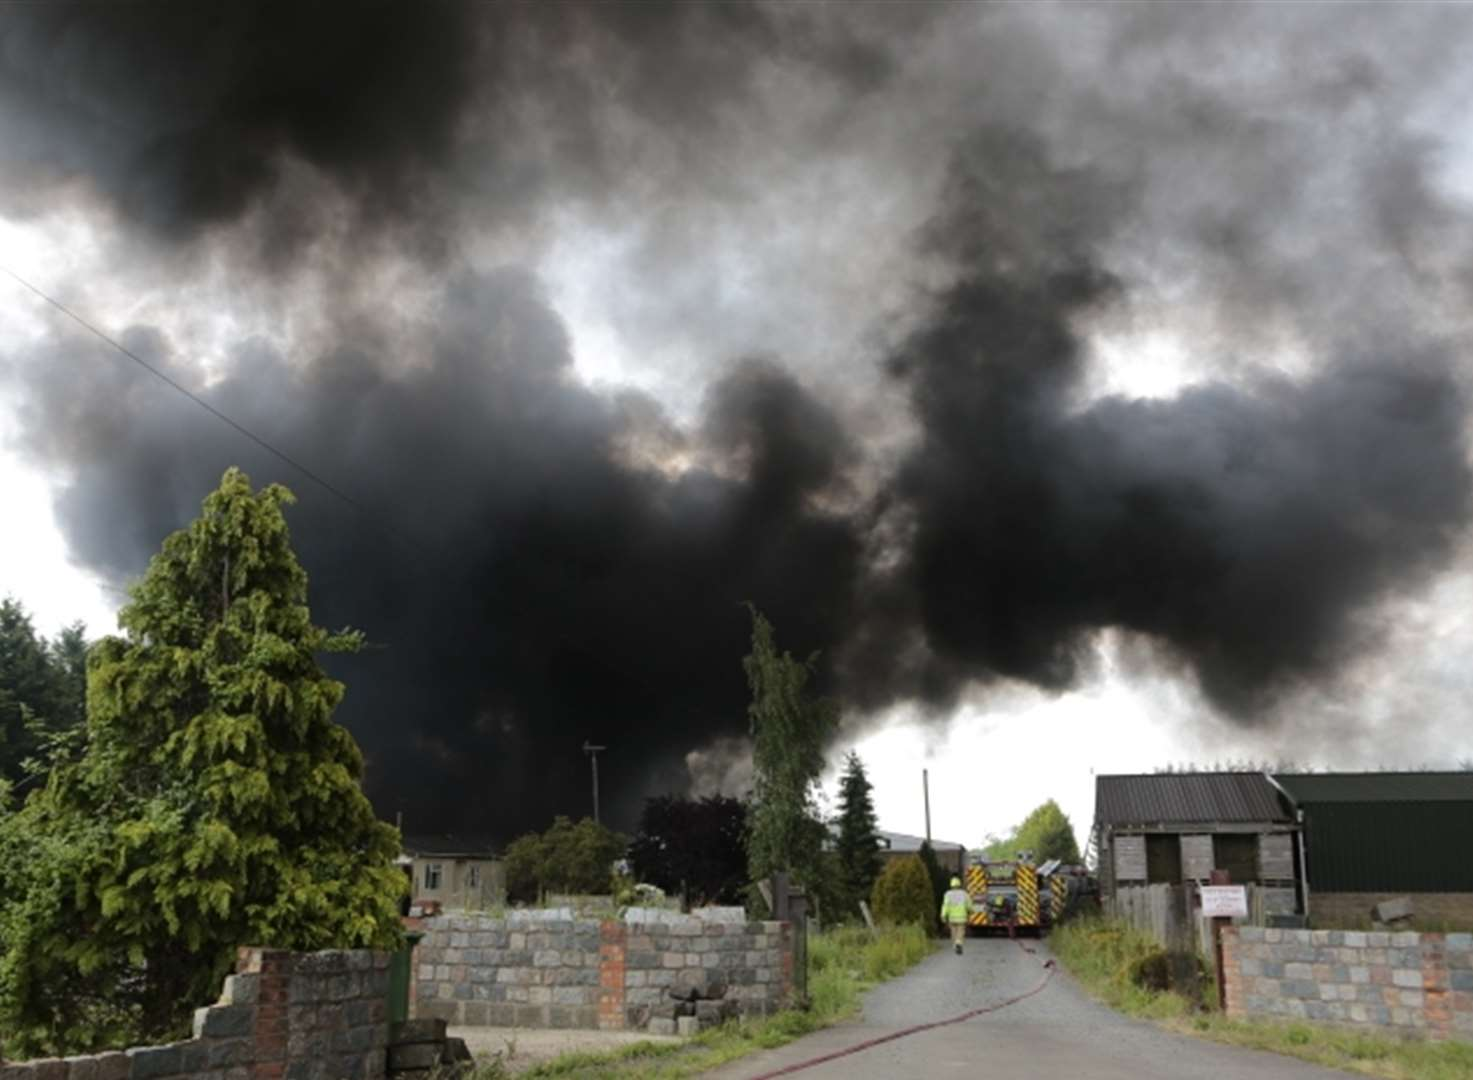 Video: Firefighters tackle large fire at farm buildings